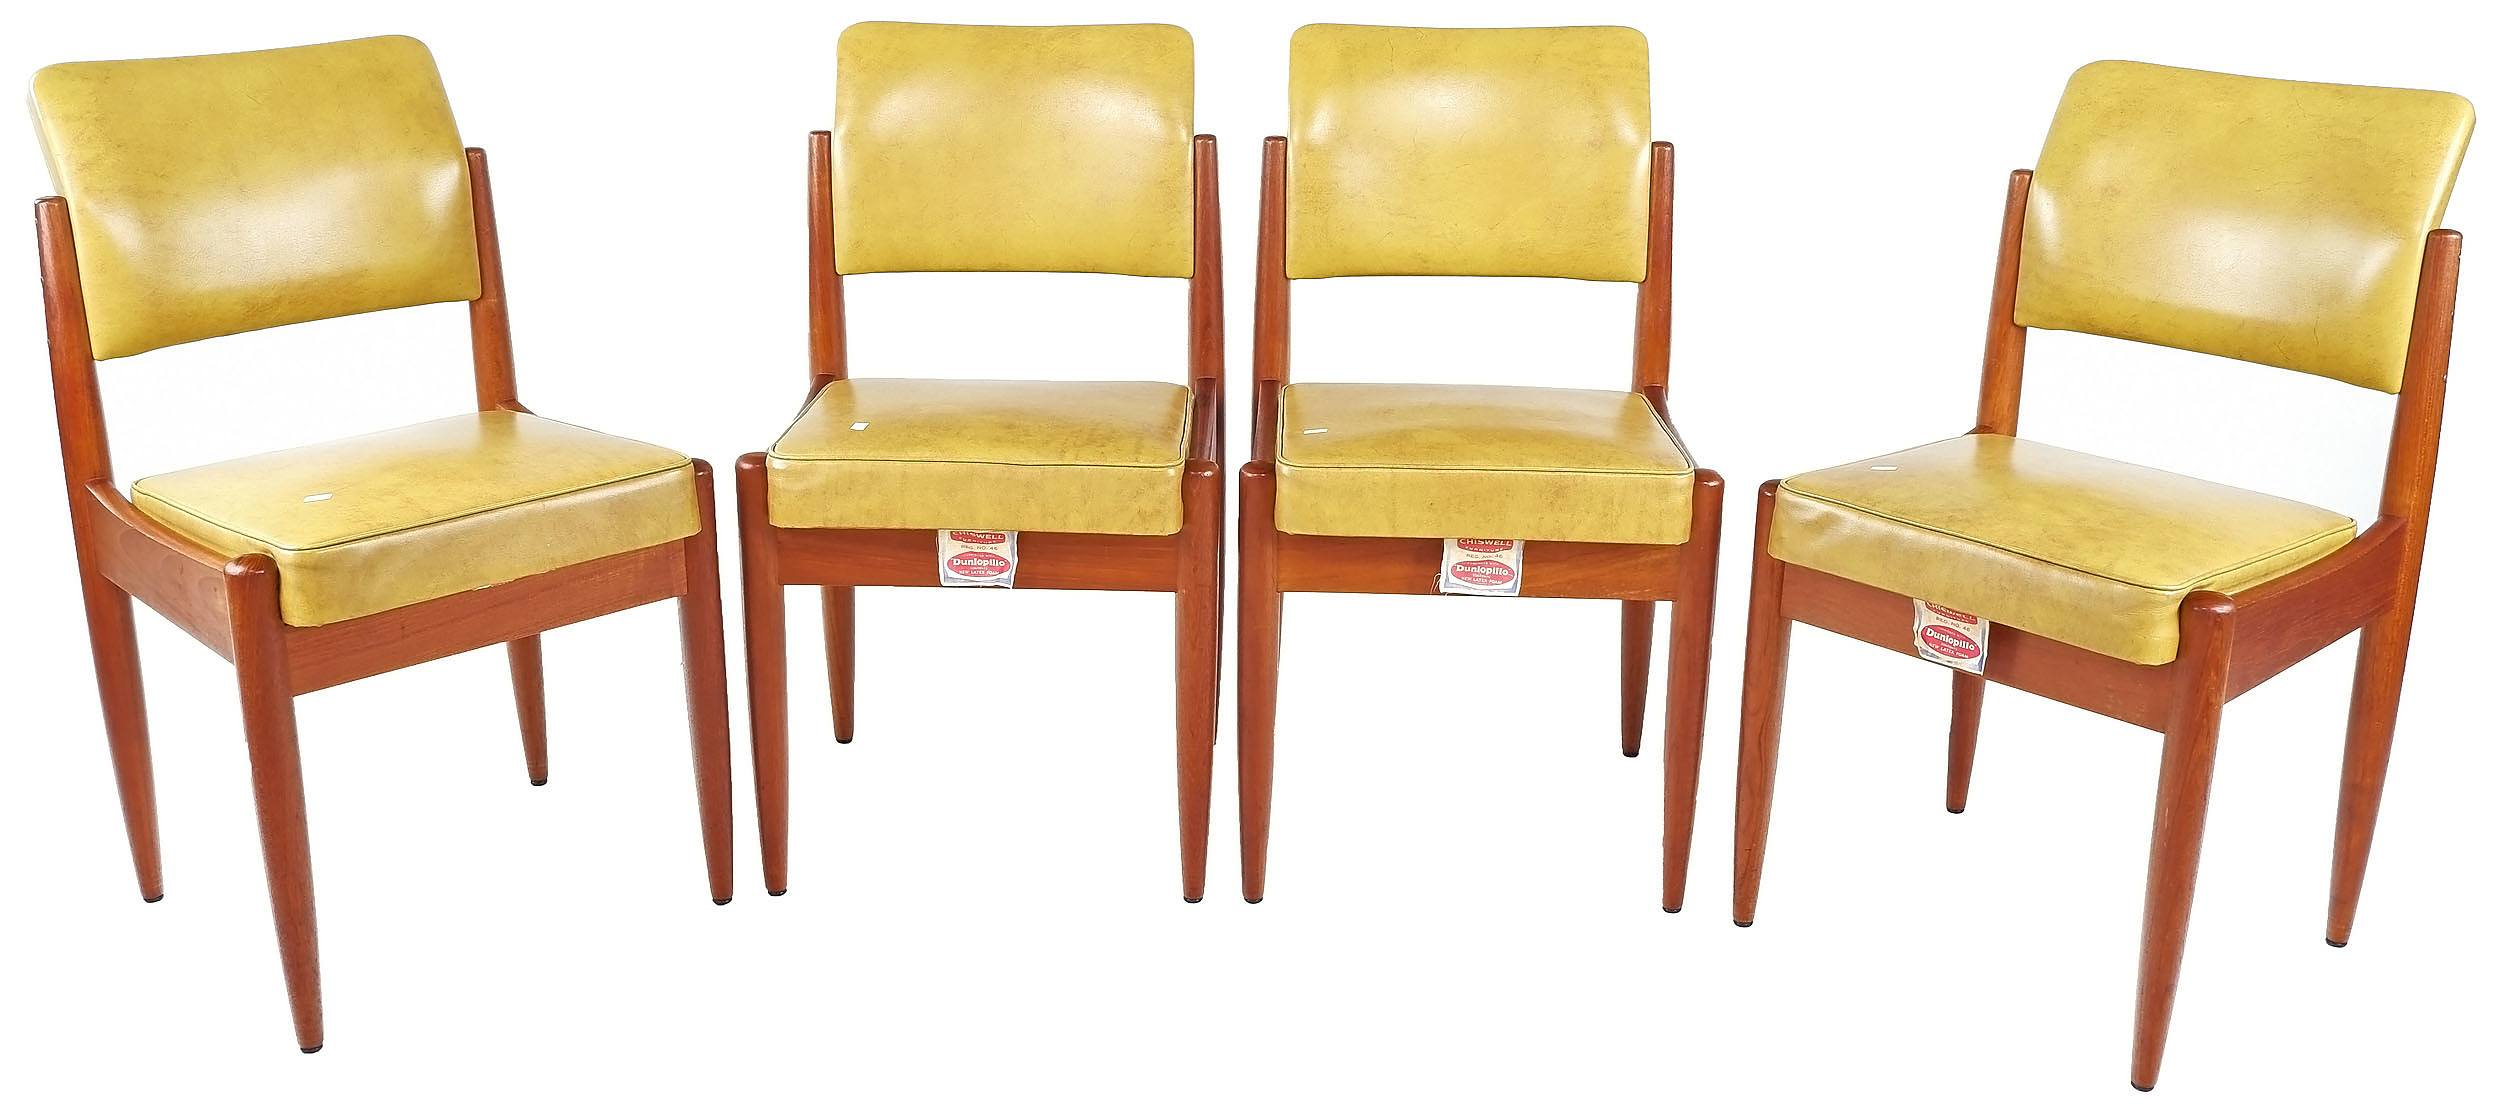 'Set of Four Chiswell Teak and Vinyl Upholstered Dining Chairs, Circa 1960s'